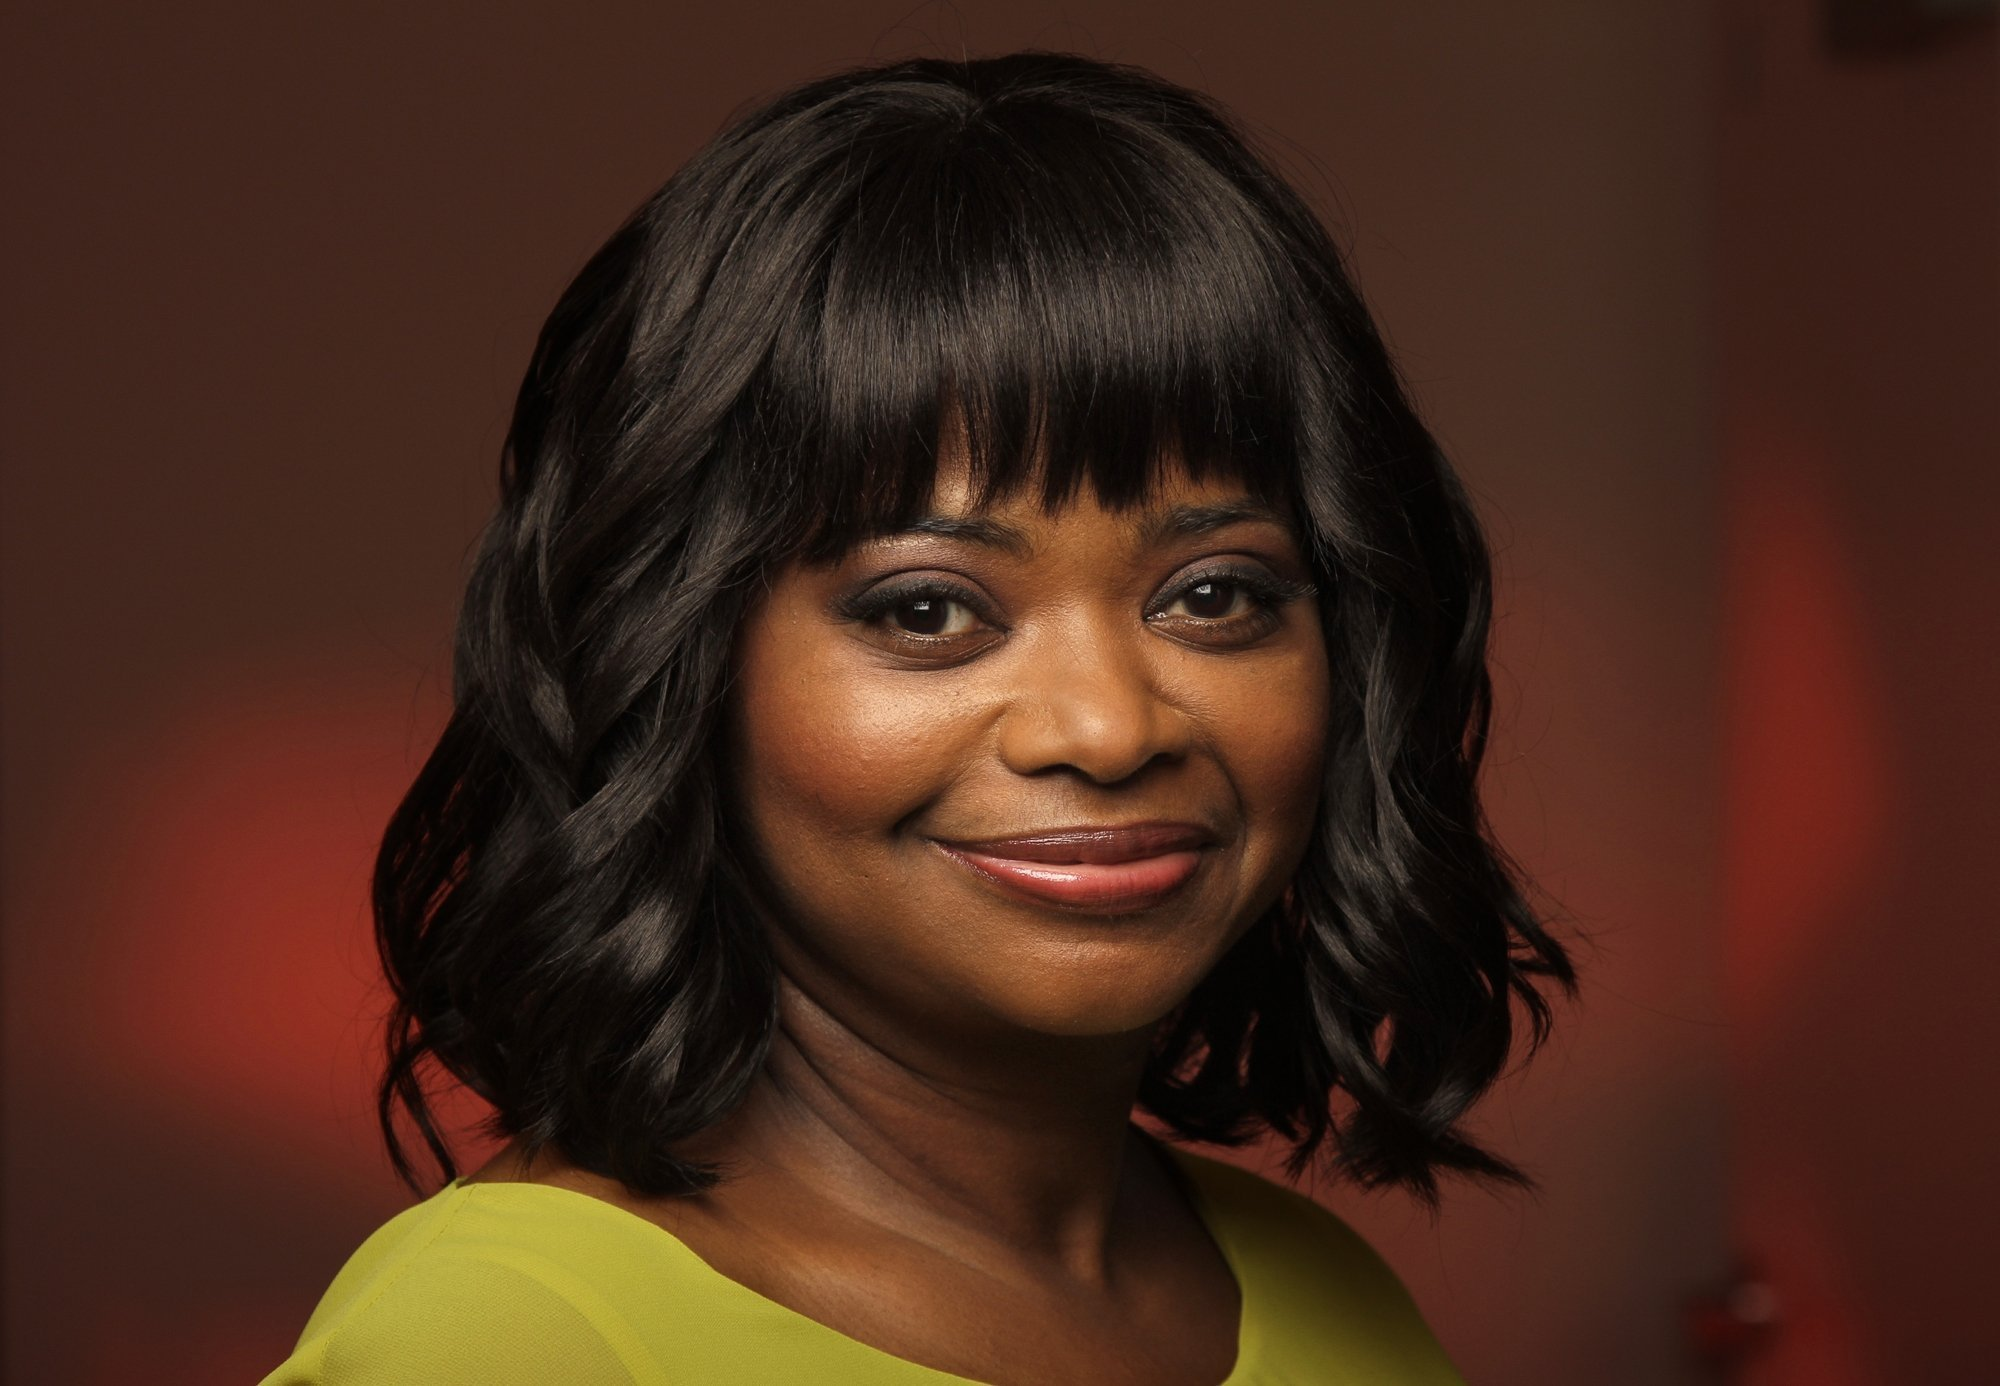 Octavia Spencer Black Women Bob Hairstyles 2017 [19659018] The old good wave bob is back to delight us with fresh bobsleigh hairstyles.  I would like to turn your eyes back to the Oscar-winning Taraji.  The Hollywood luxury wave on her bob, the light highlights, in combination with discreet décolleté of her fine black velvet dress, make the look look really chic.   </ P></p> <h3> Black Women Bob Cuts 2017 – Smooth and Straight </ h3></p> <p> <img class =